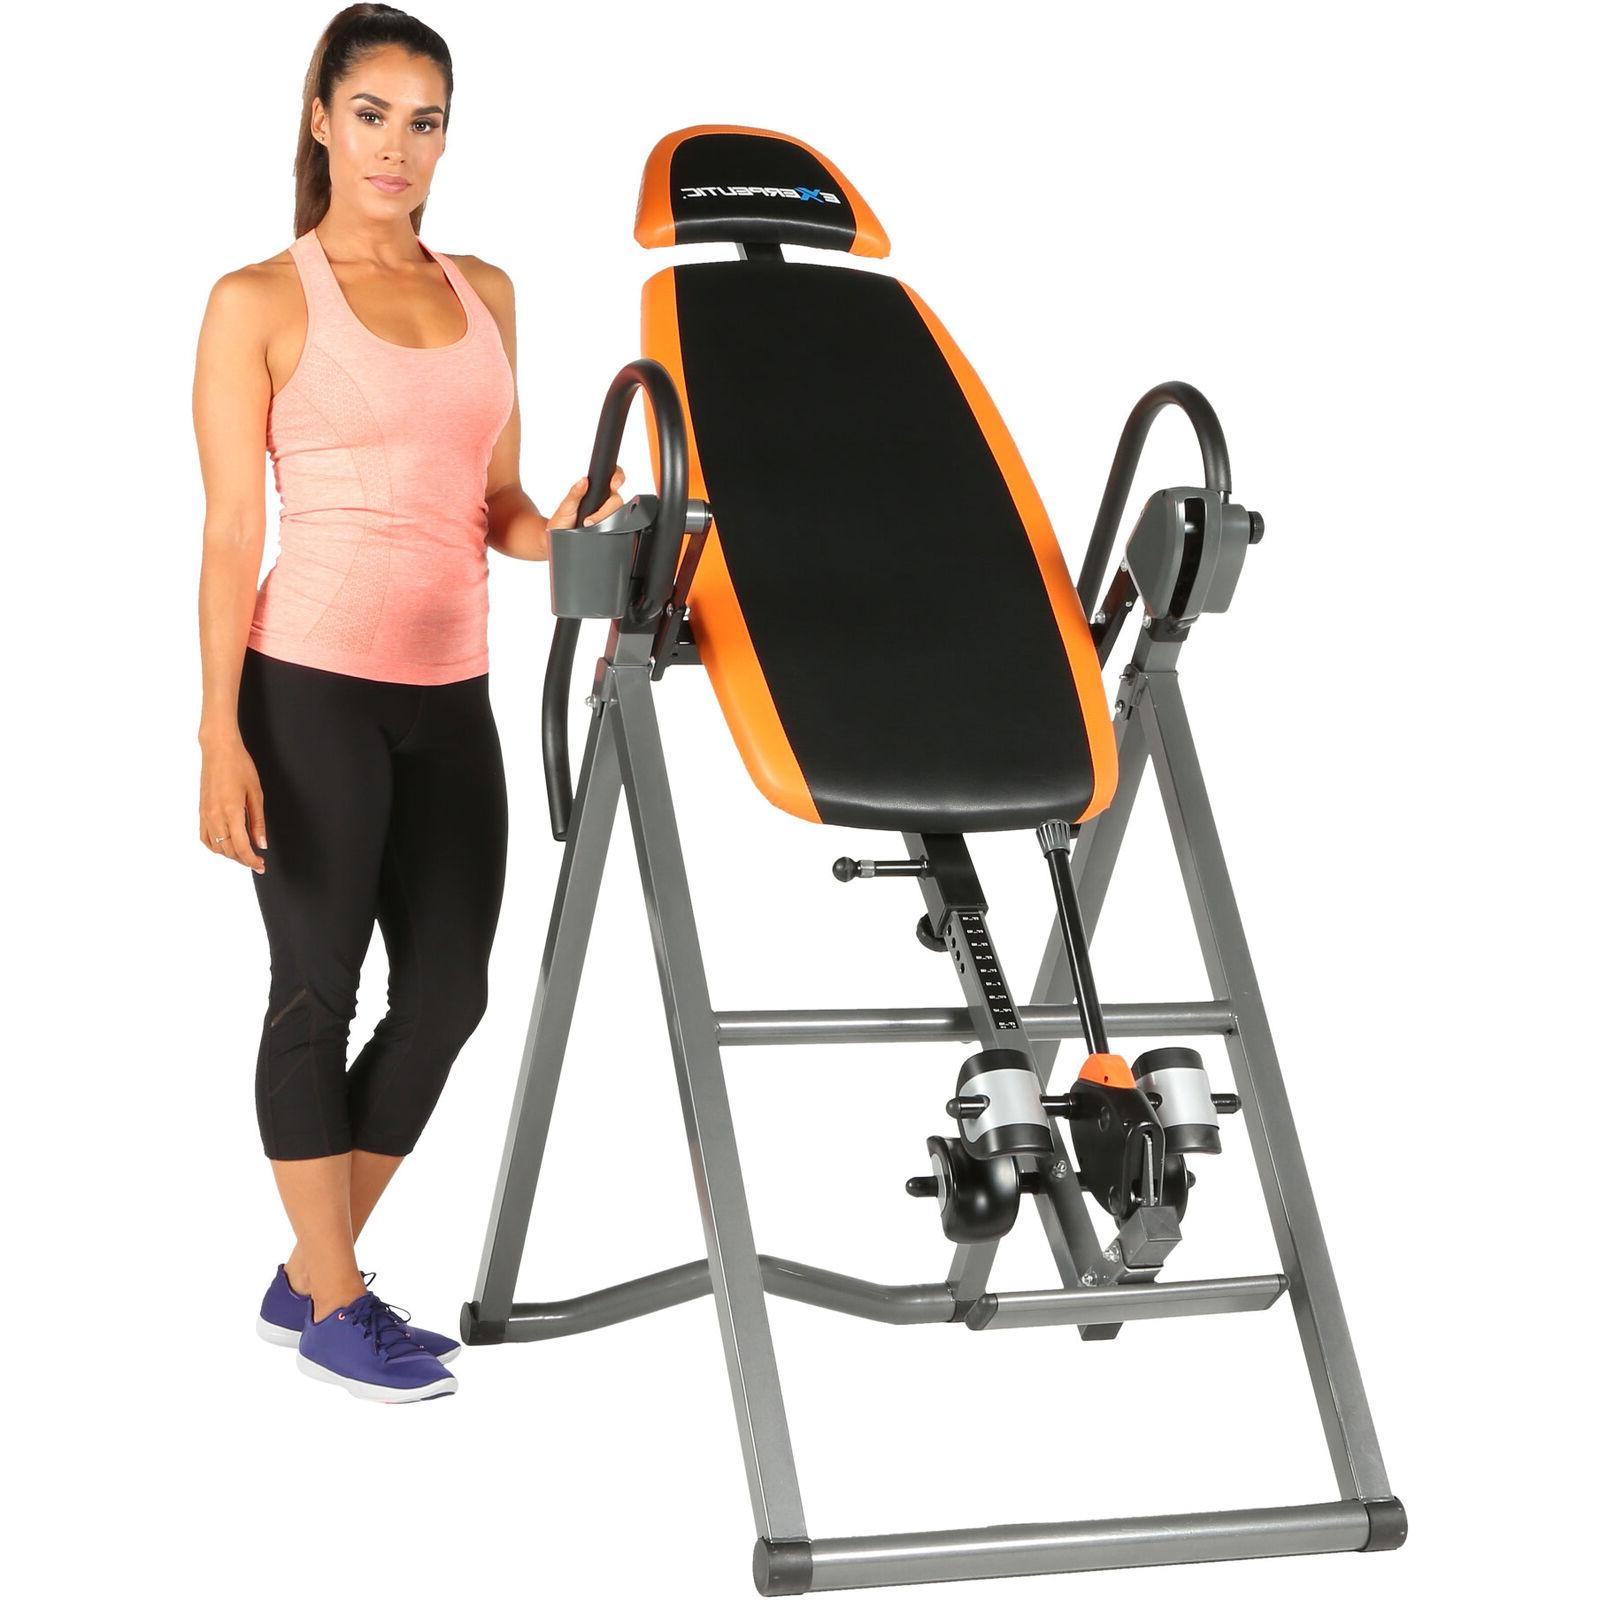 Inversion Table Exerpeutic UltraSafe SURELOCK Ratchet Ankle